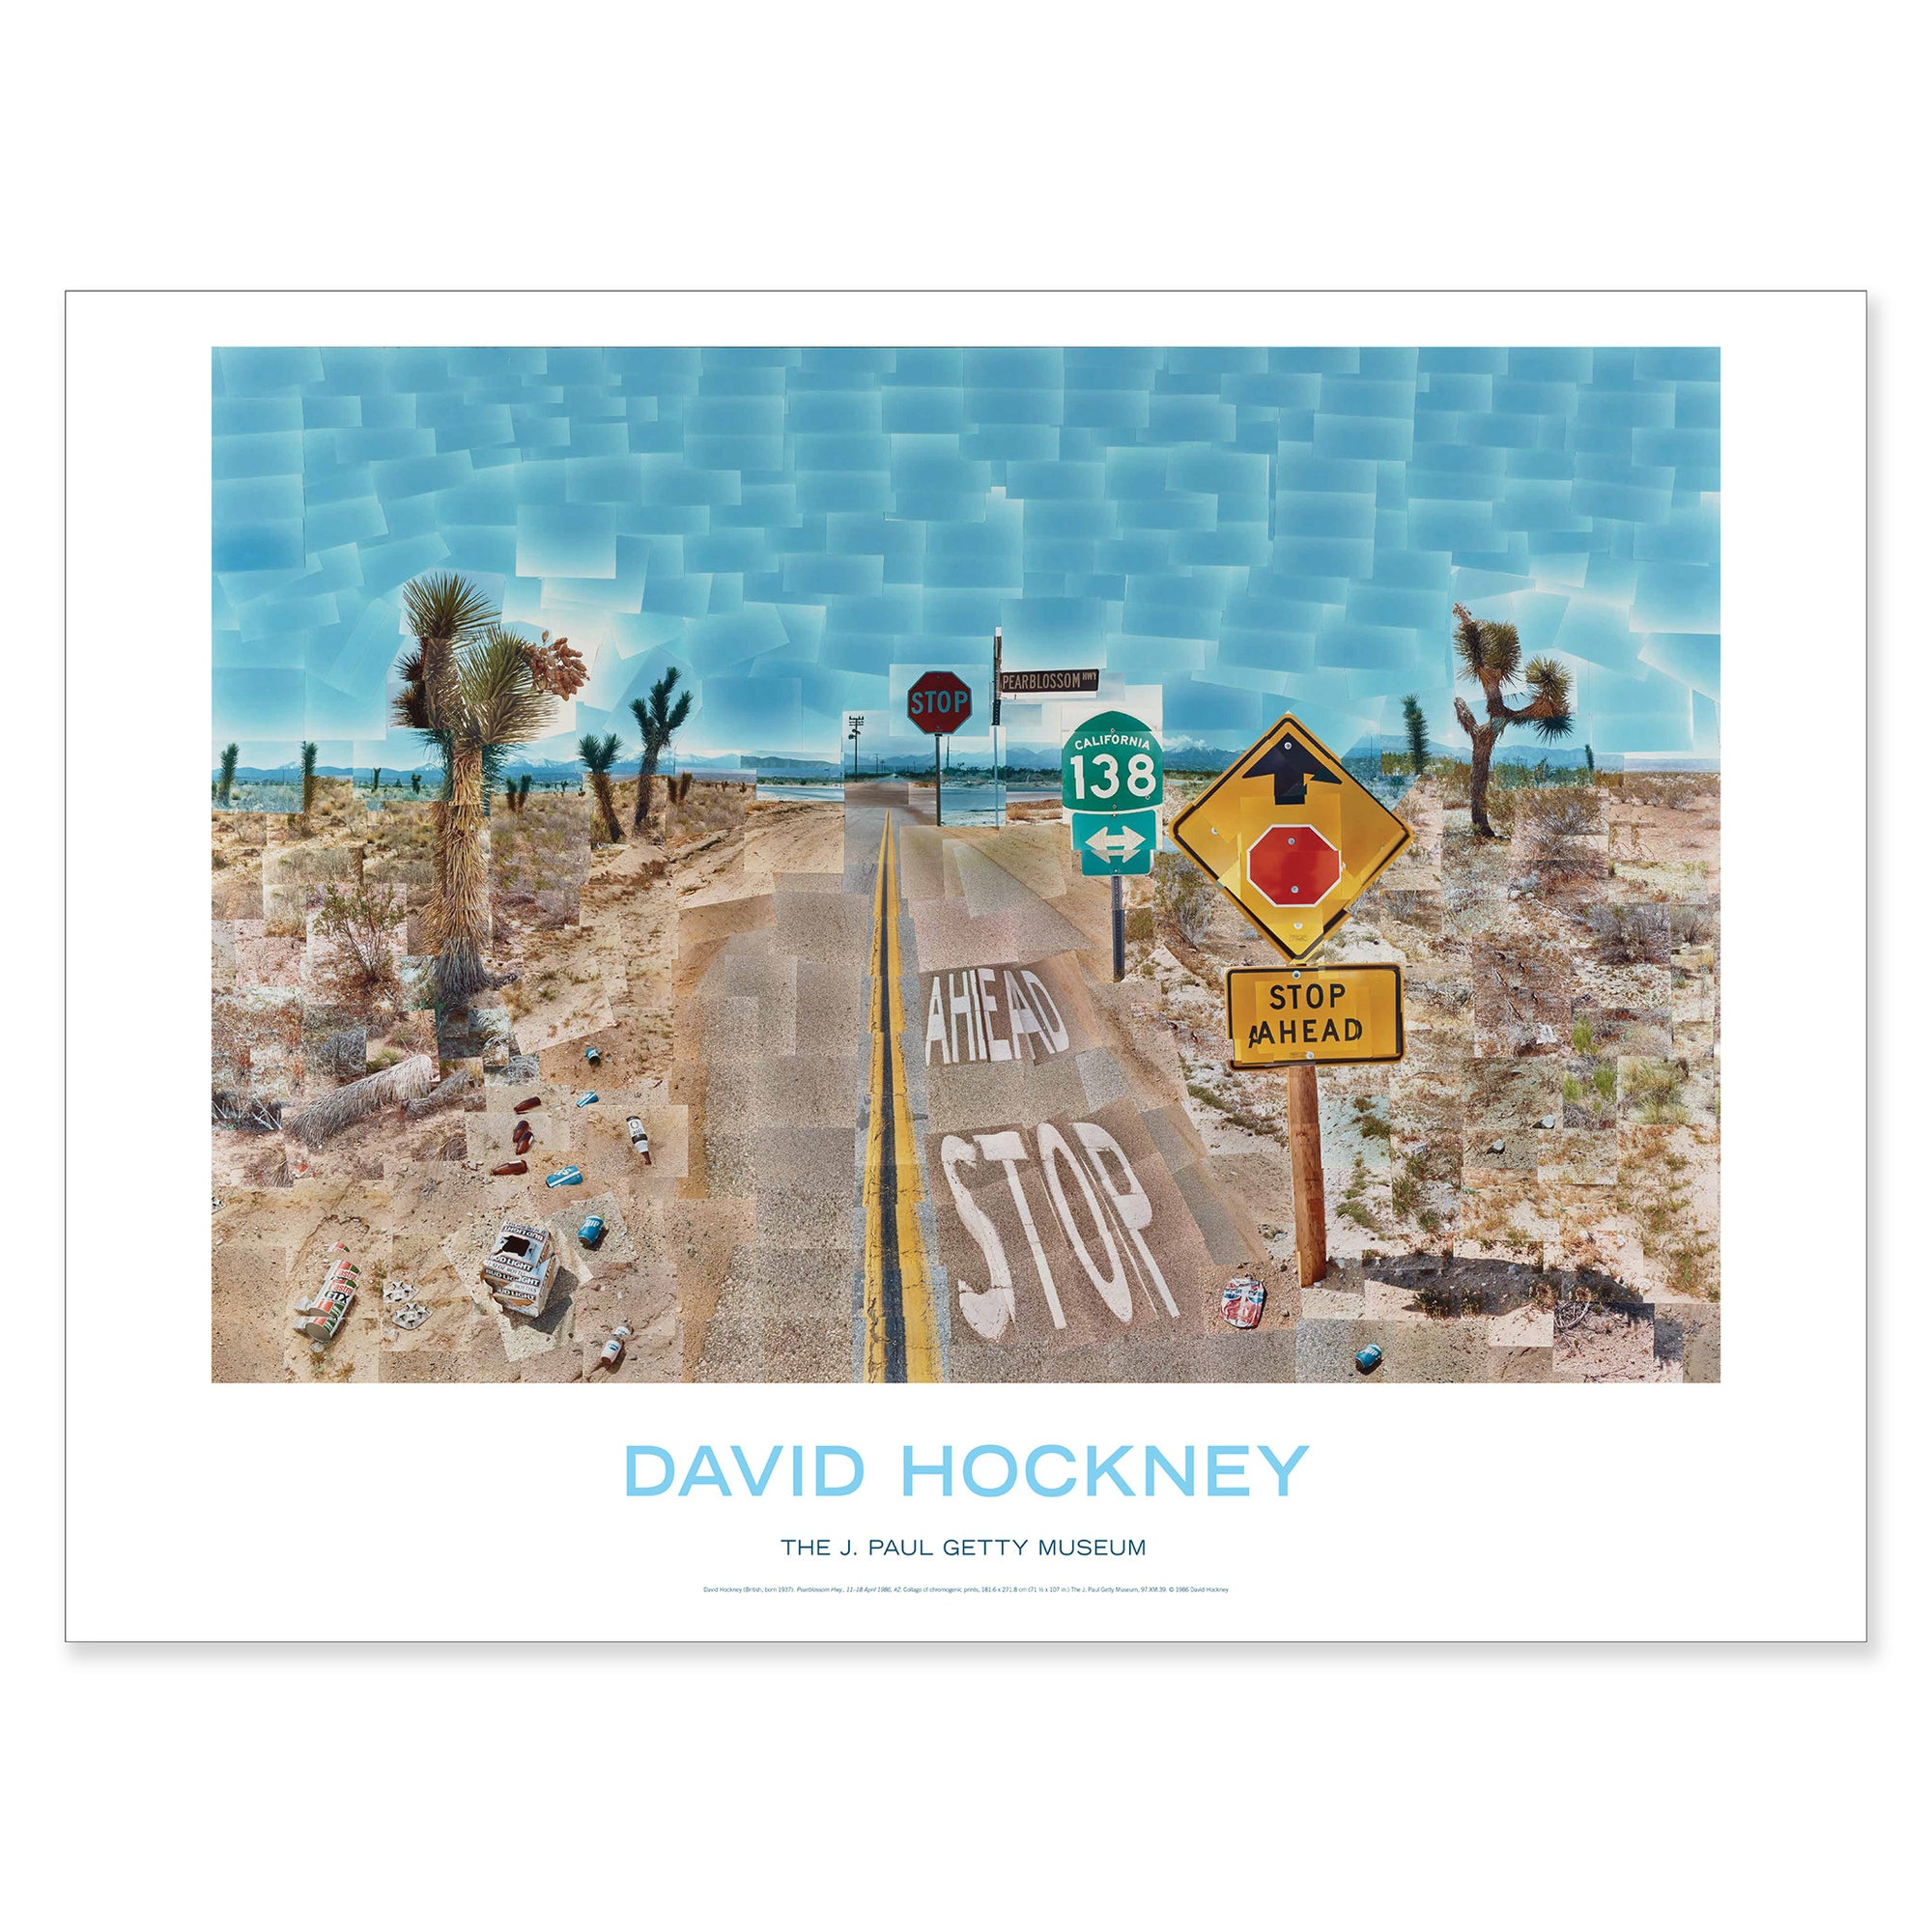 David Hockney - Pearblossom Hwy 11 - 18th April 1986 #2 - Poster